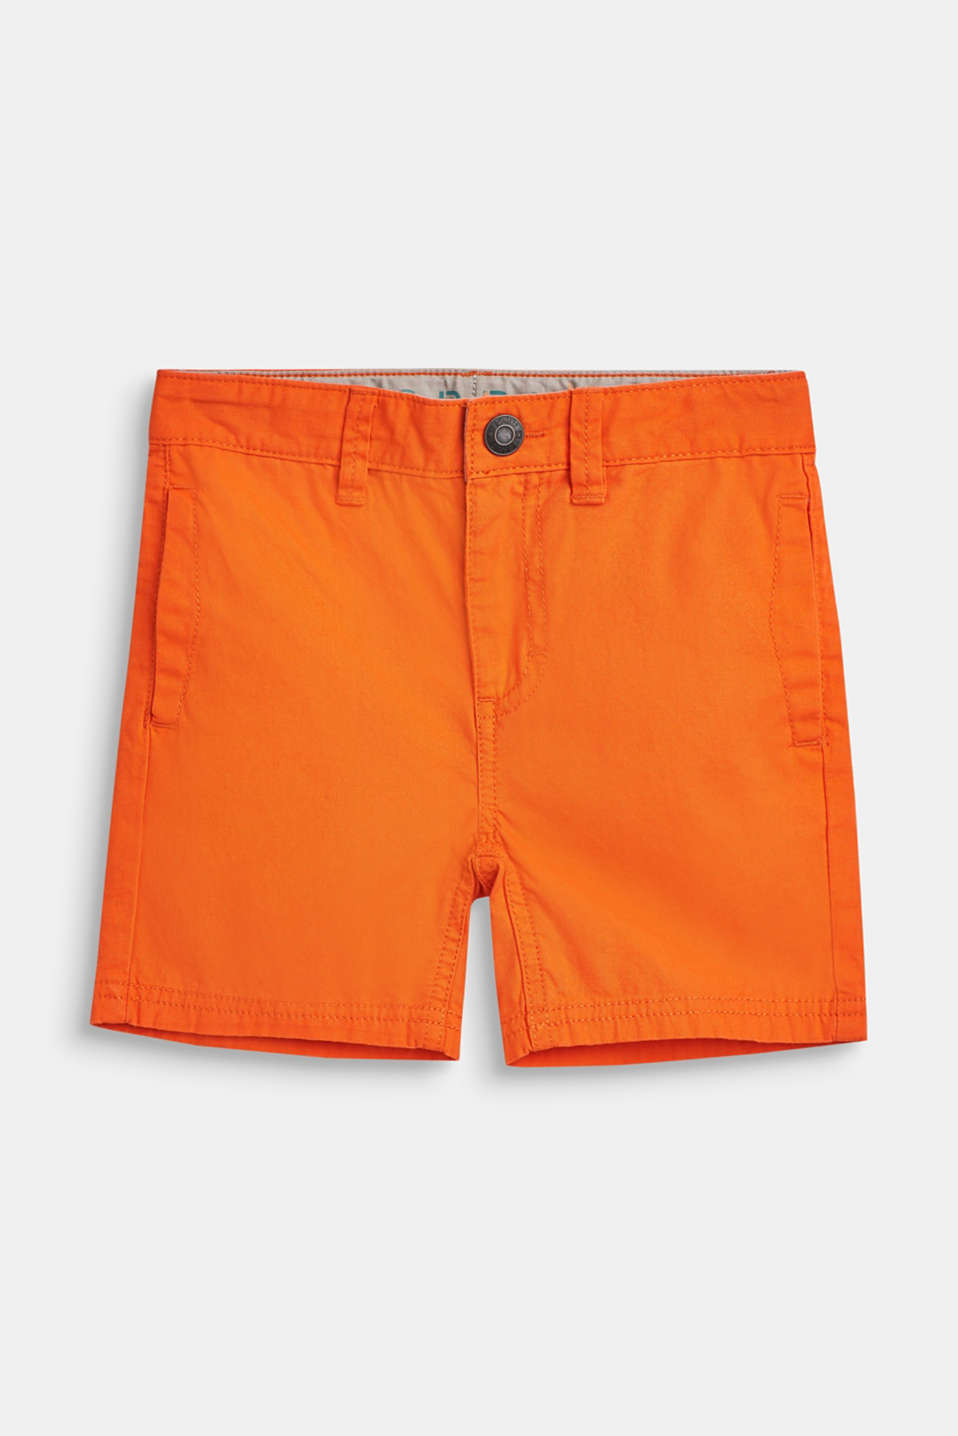 Shorts with adjustable waistband, 100% cotton, BRIGHT ORANGE, detail image number 0